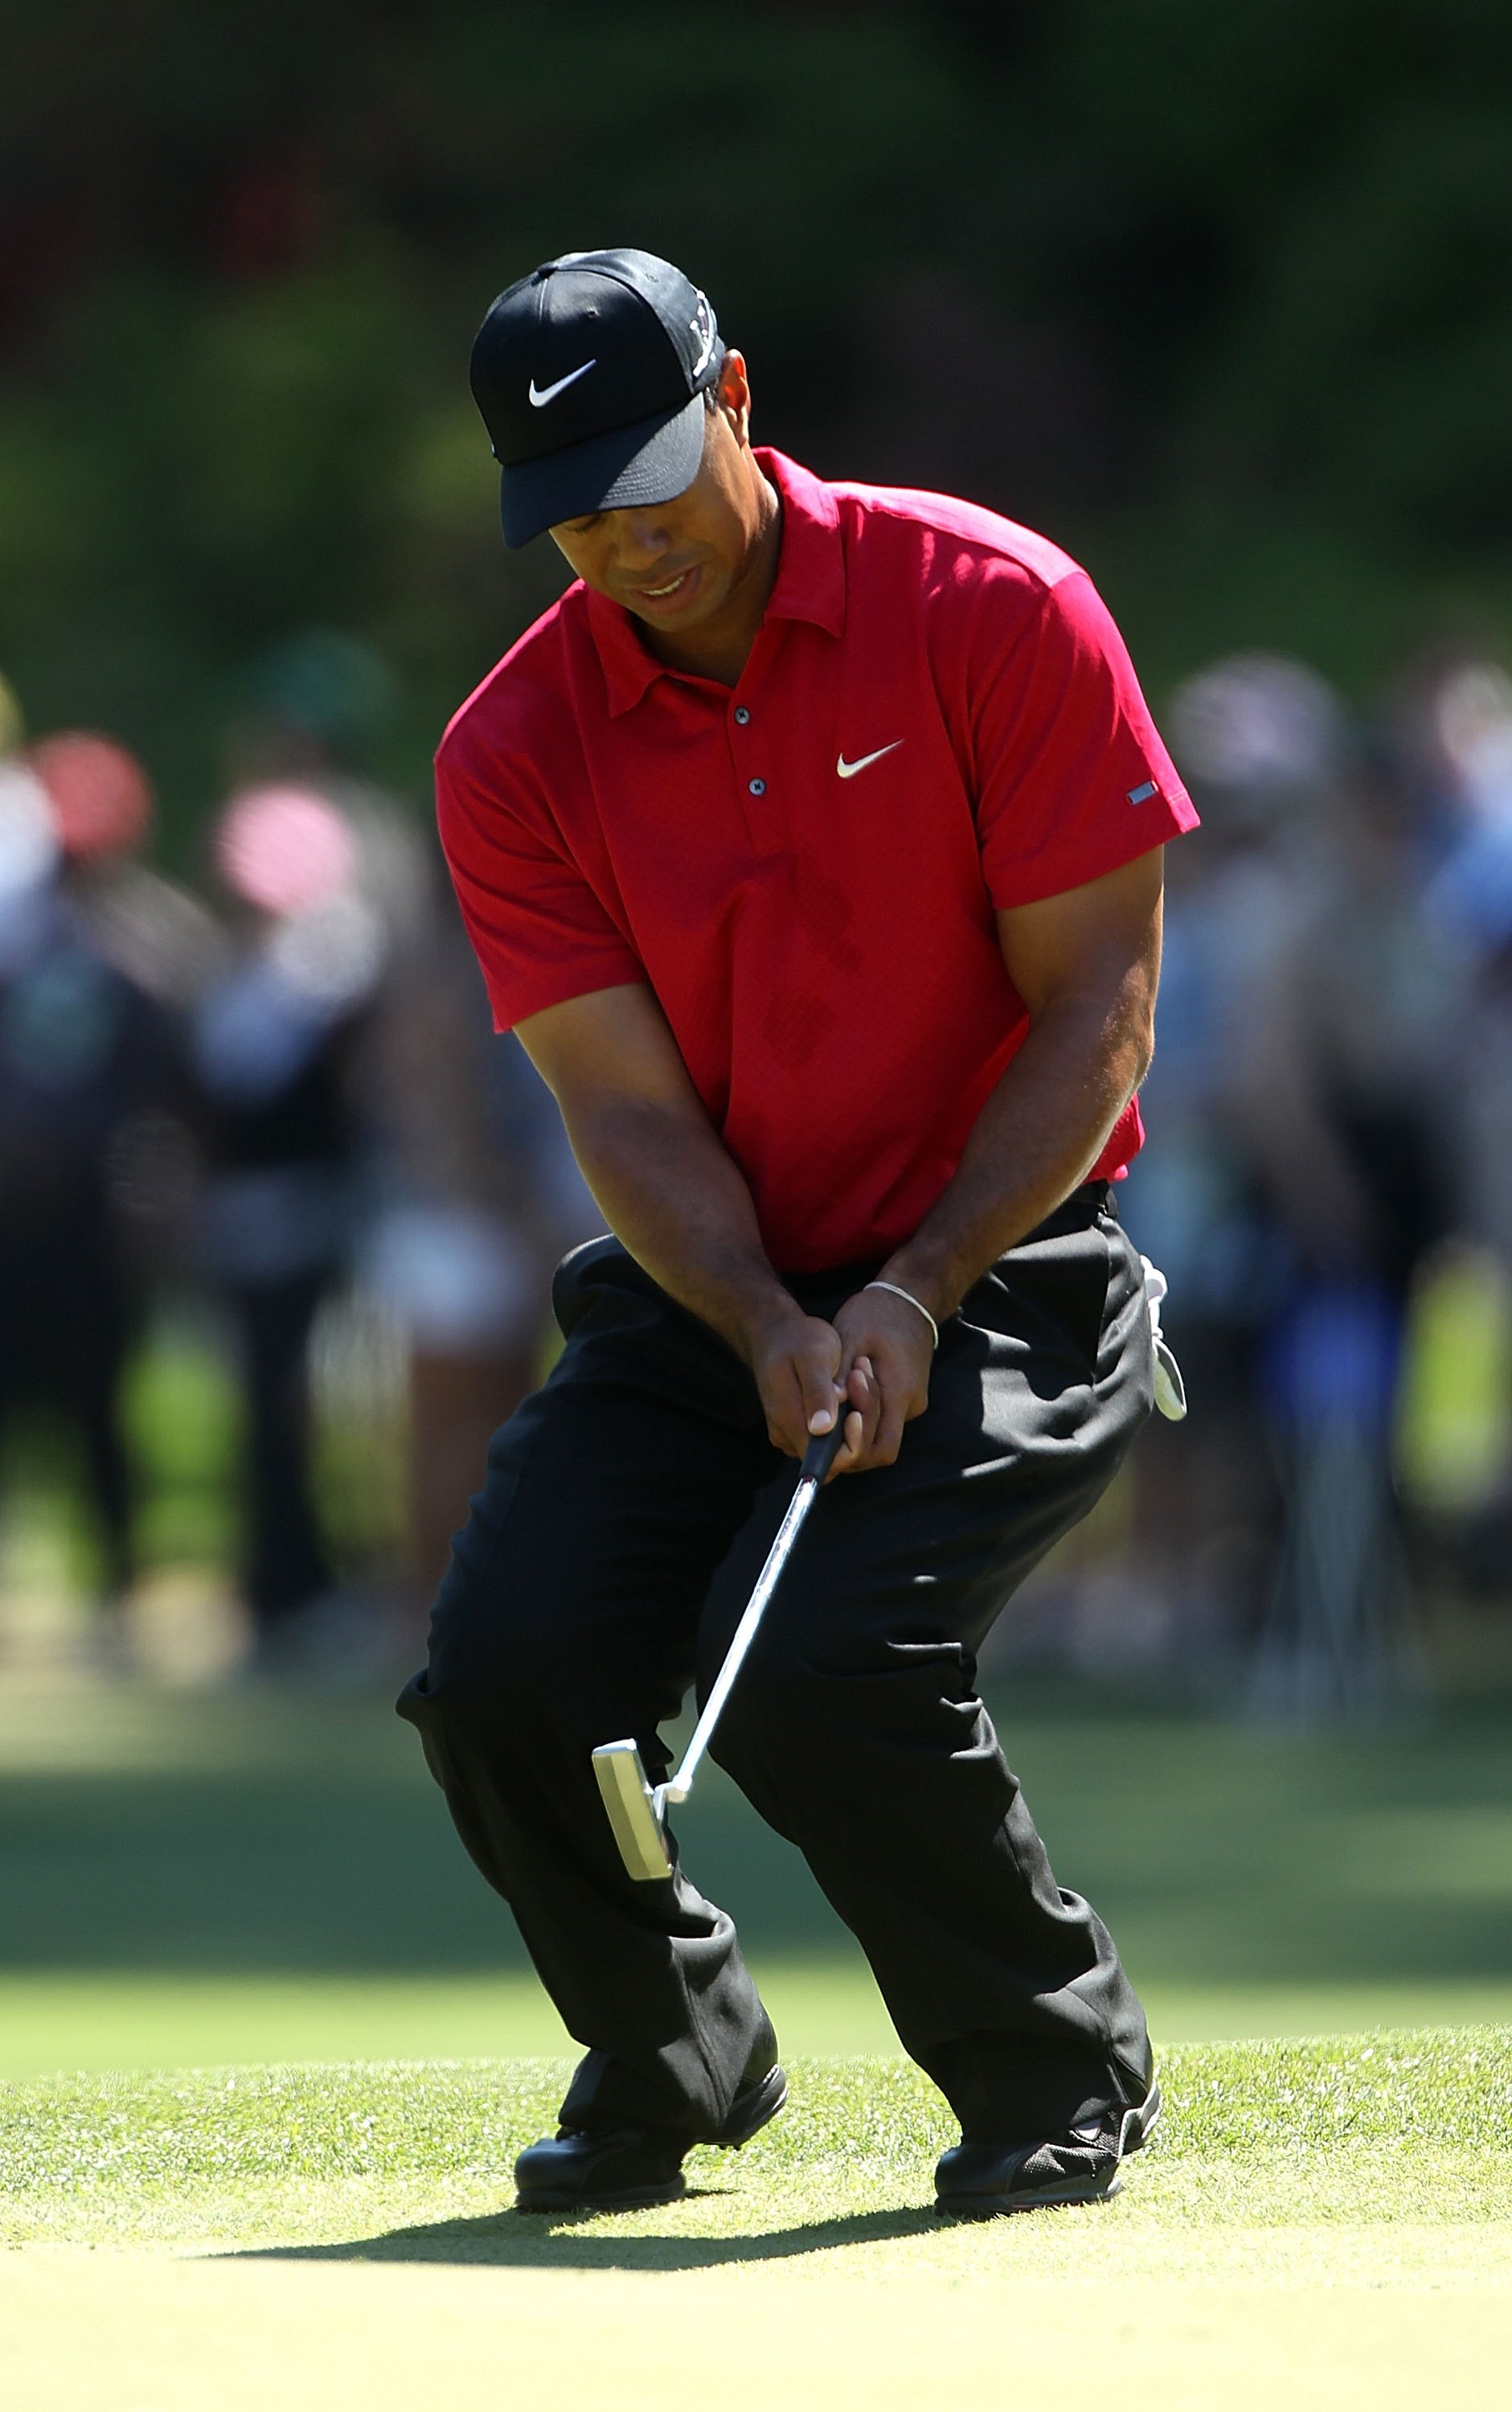 With Tiger Woods off his game, the field at this year's Masters is wide open.